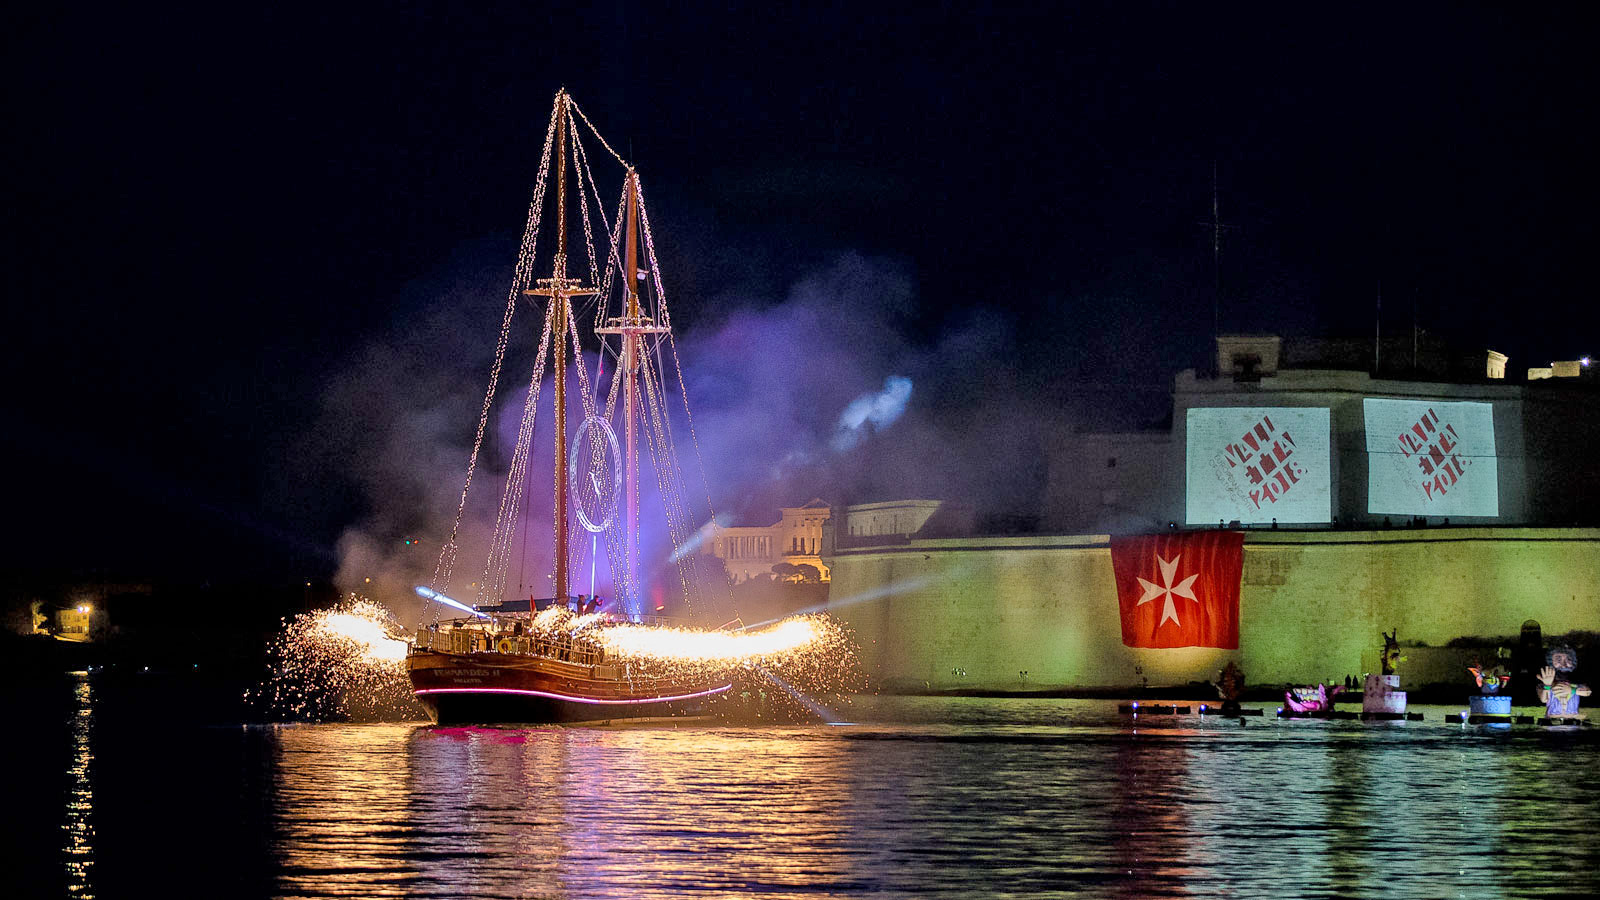 Pageant of the Seas, una giornata di festa nel Grand Harbour di Valletta